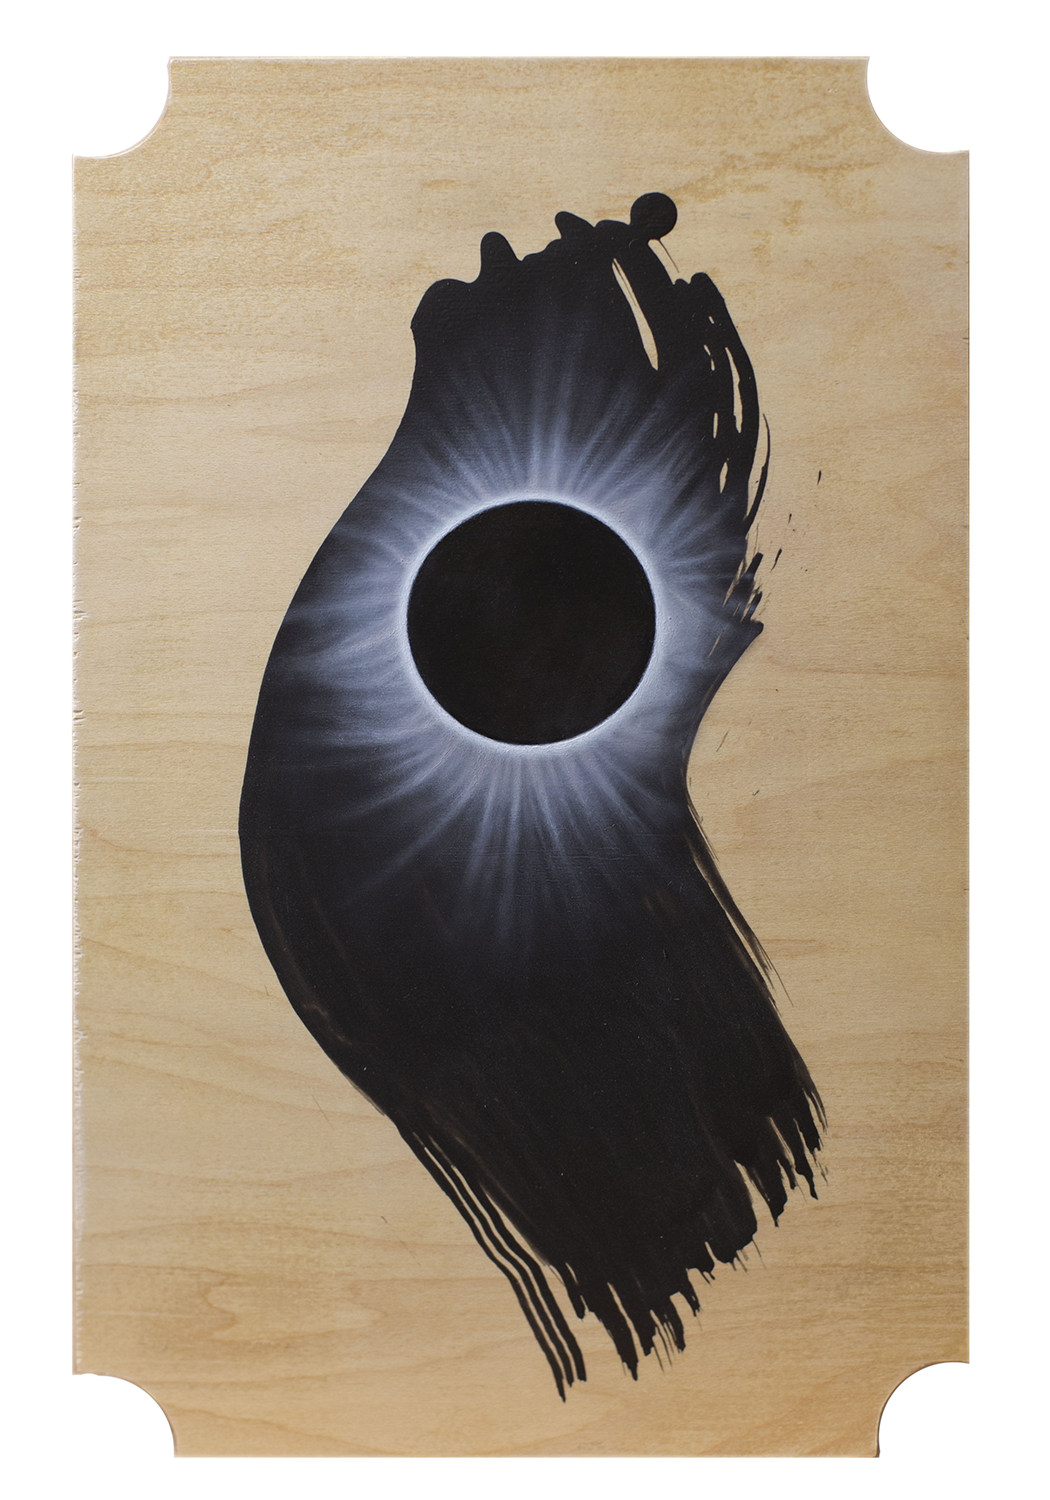 Brendon Palmer-Angell__Totality__2018_oil_7x10_$125.png